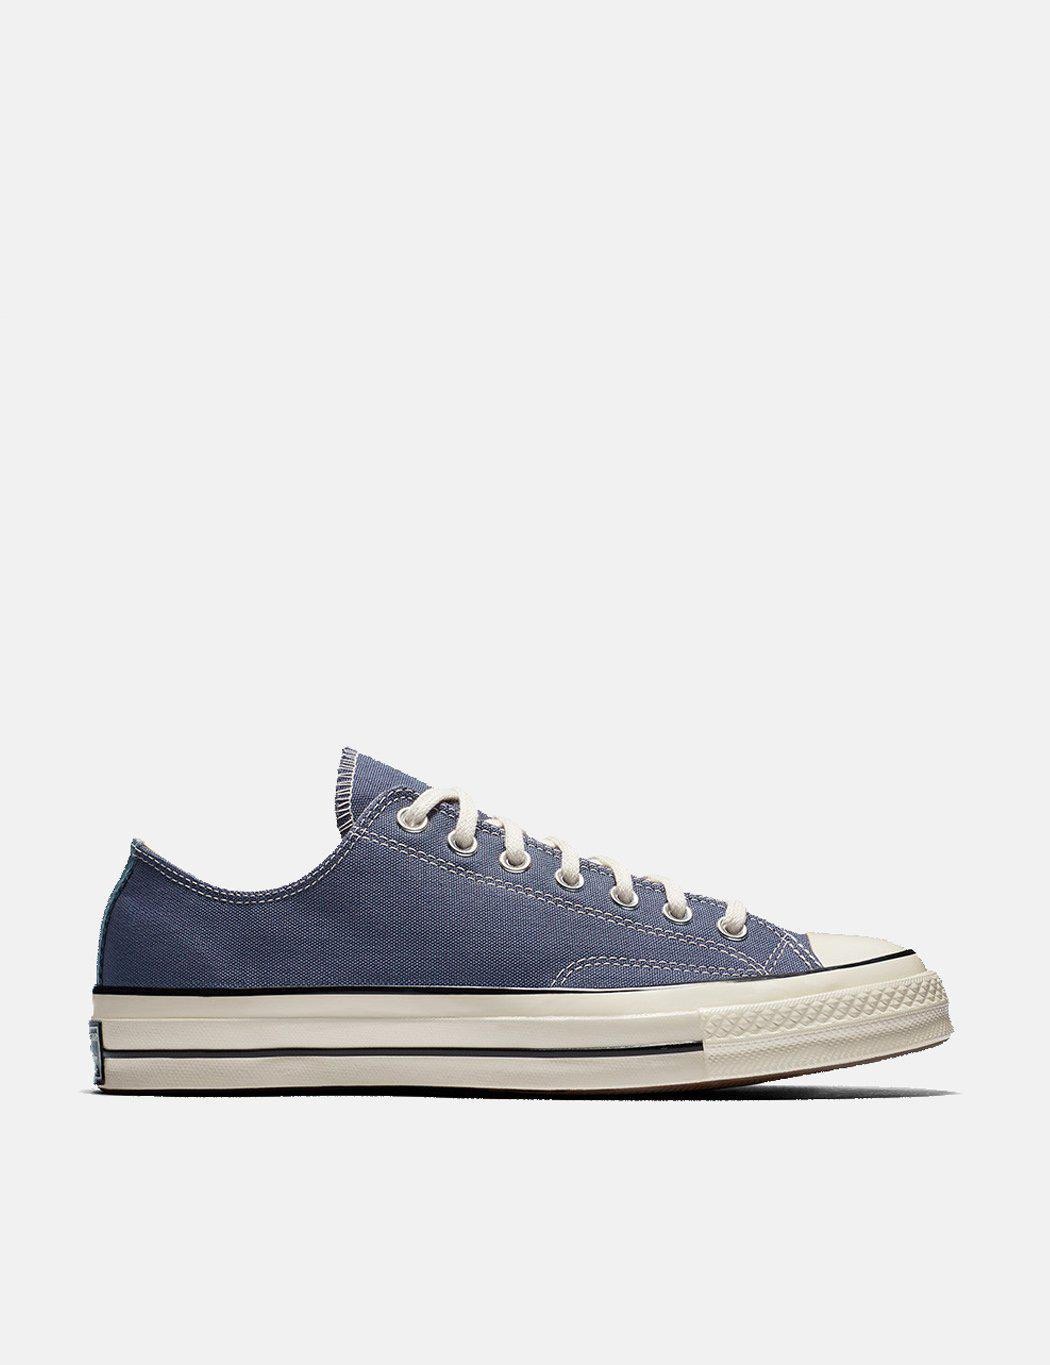 a8dbd72196ff25 Lyst - Converse 70 s Chuck Low 159625c (canvas) in Gray for Men